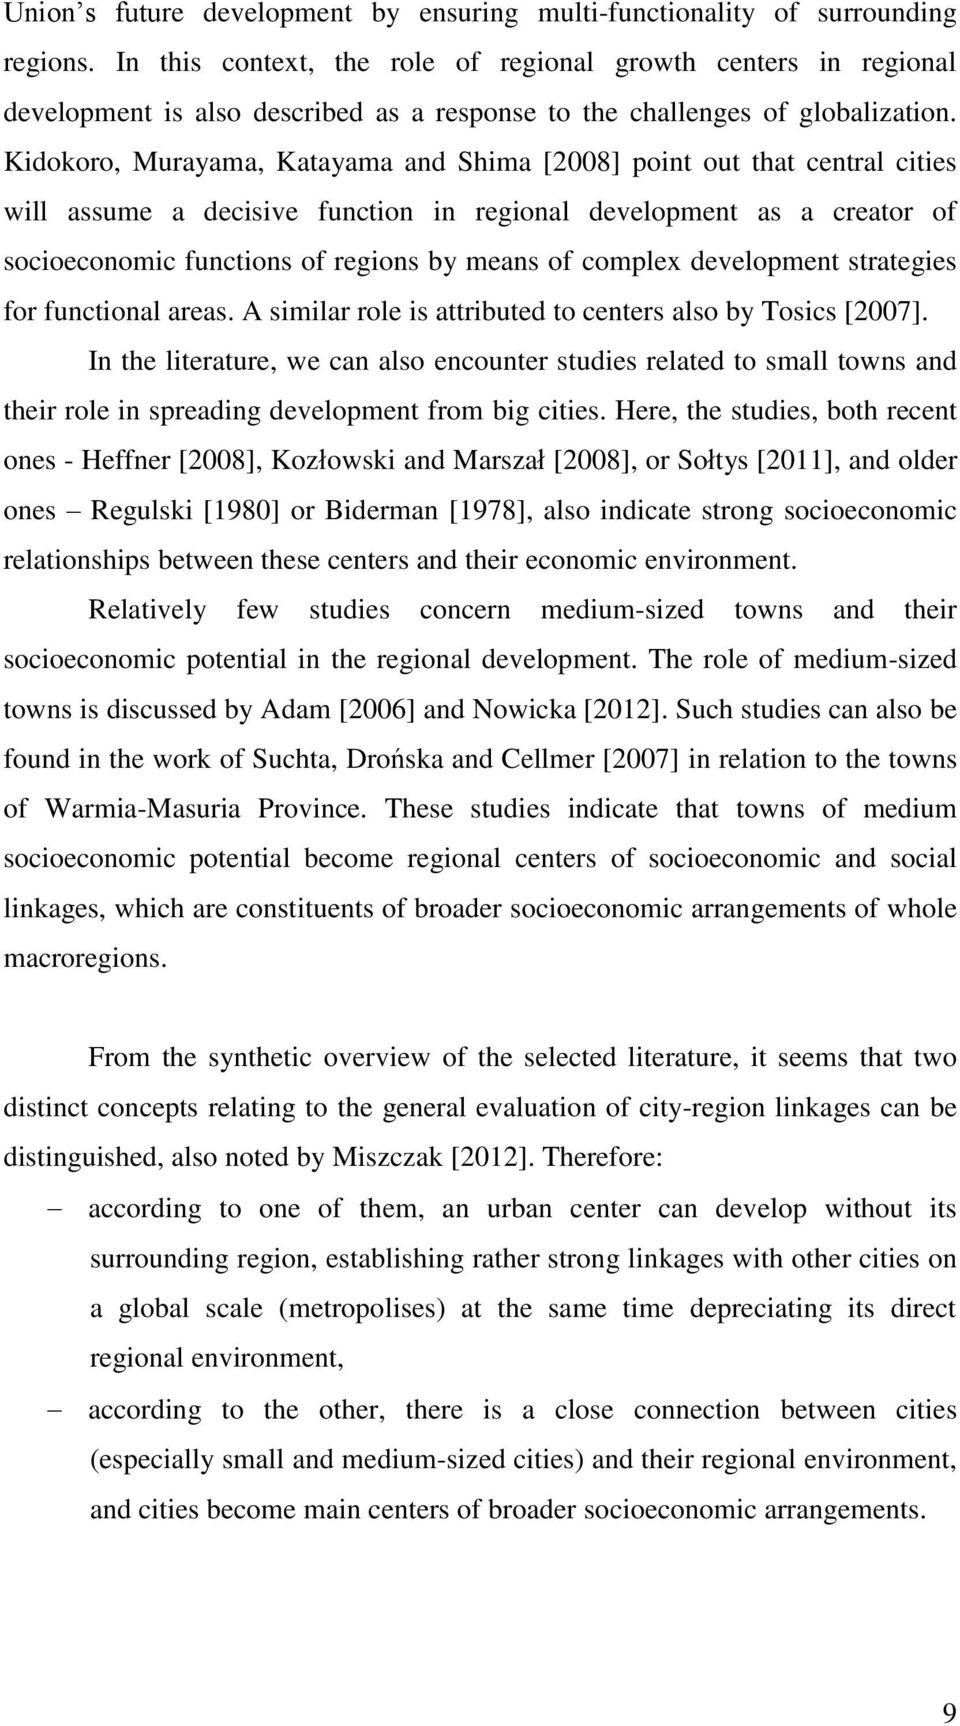 Kidokoro, Murayama, Katayama and Shima [2008] point out that central cities will assume a decisive function in regional development as a creator of socioeconomic functions of regions by means of